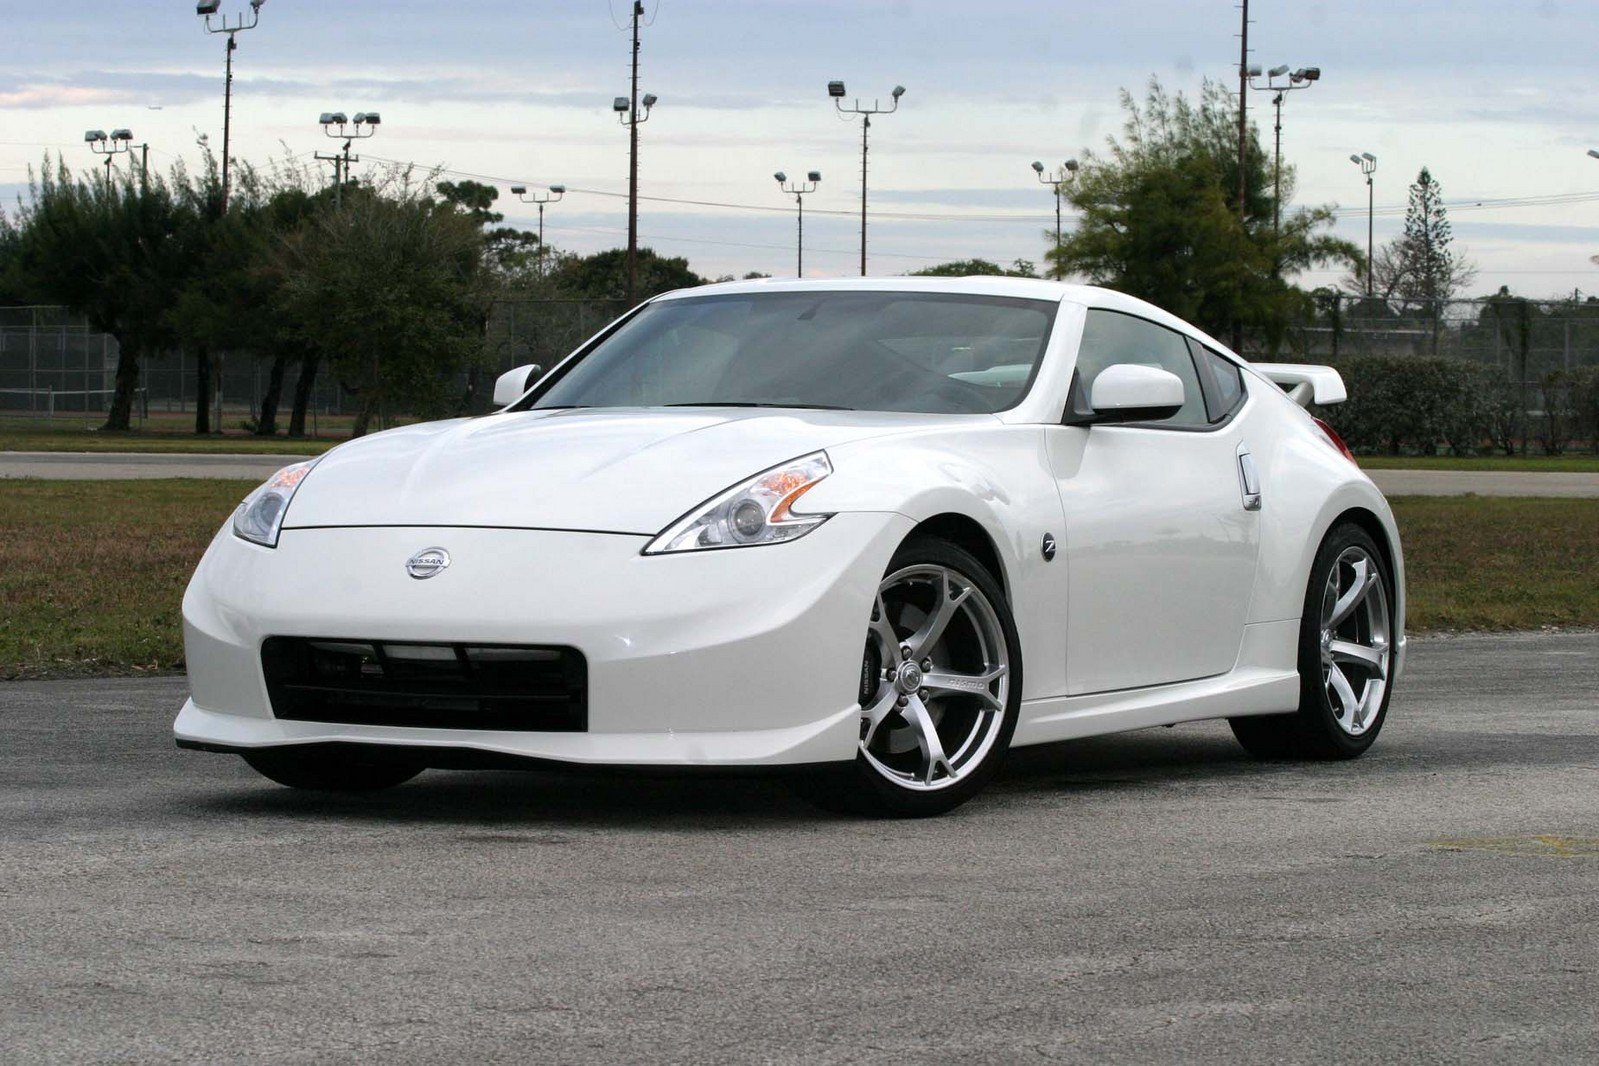 2010 nissan 370z nismo edition review top speed. Black Bedroom Furniture Sets. Home Design Ideas